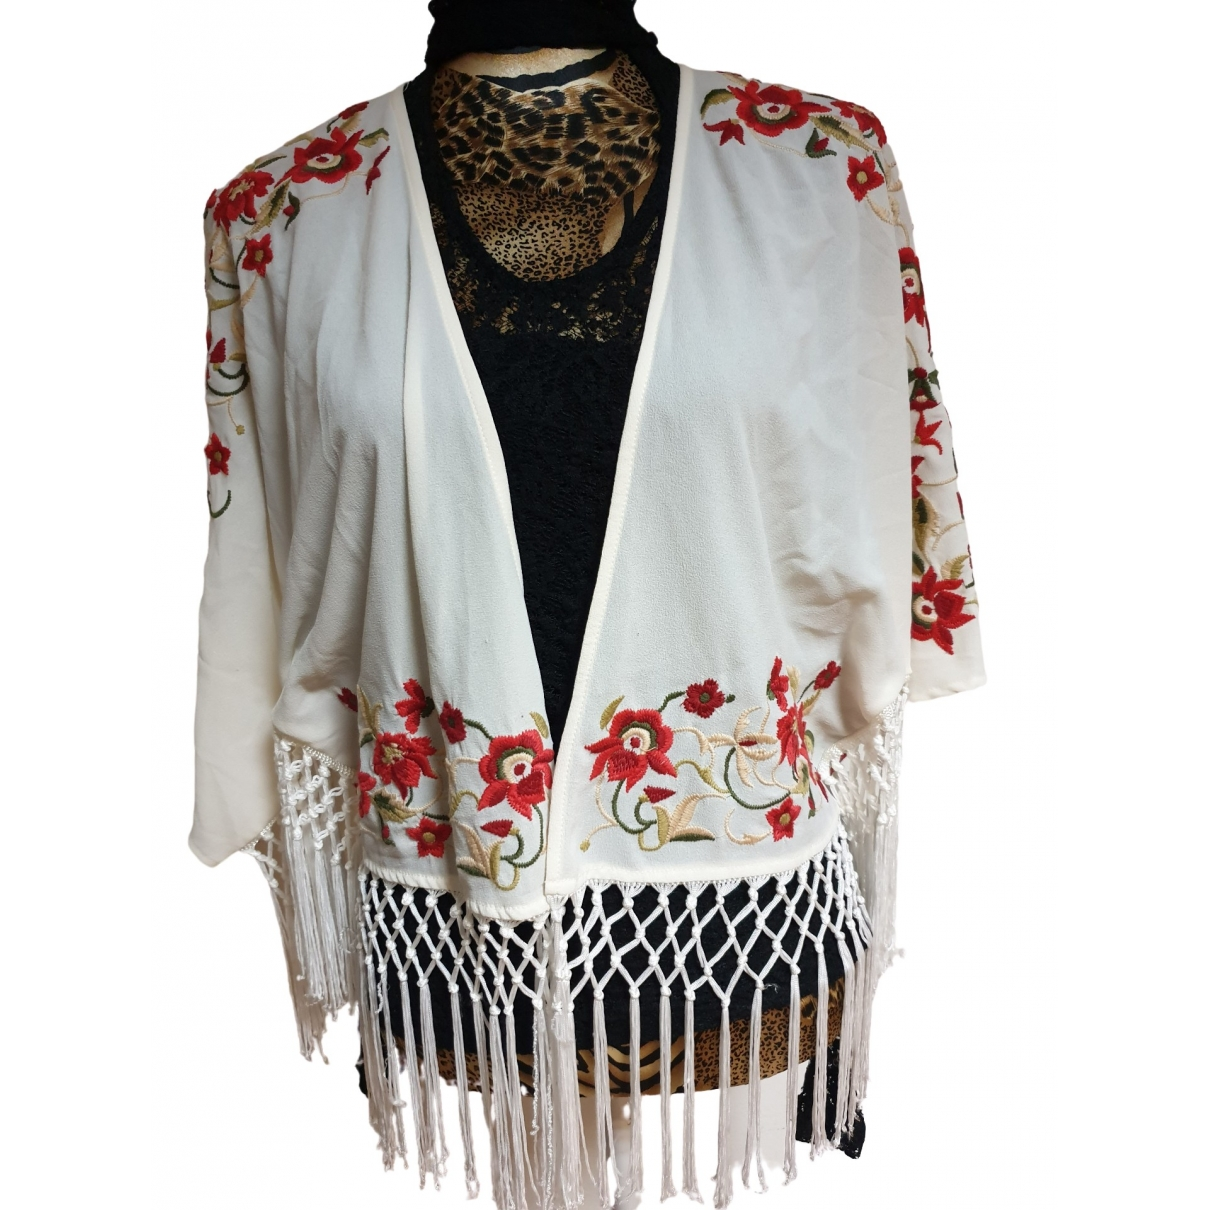 Non Signé / Unsigned \N White Knitwear for Women One Size FR